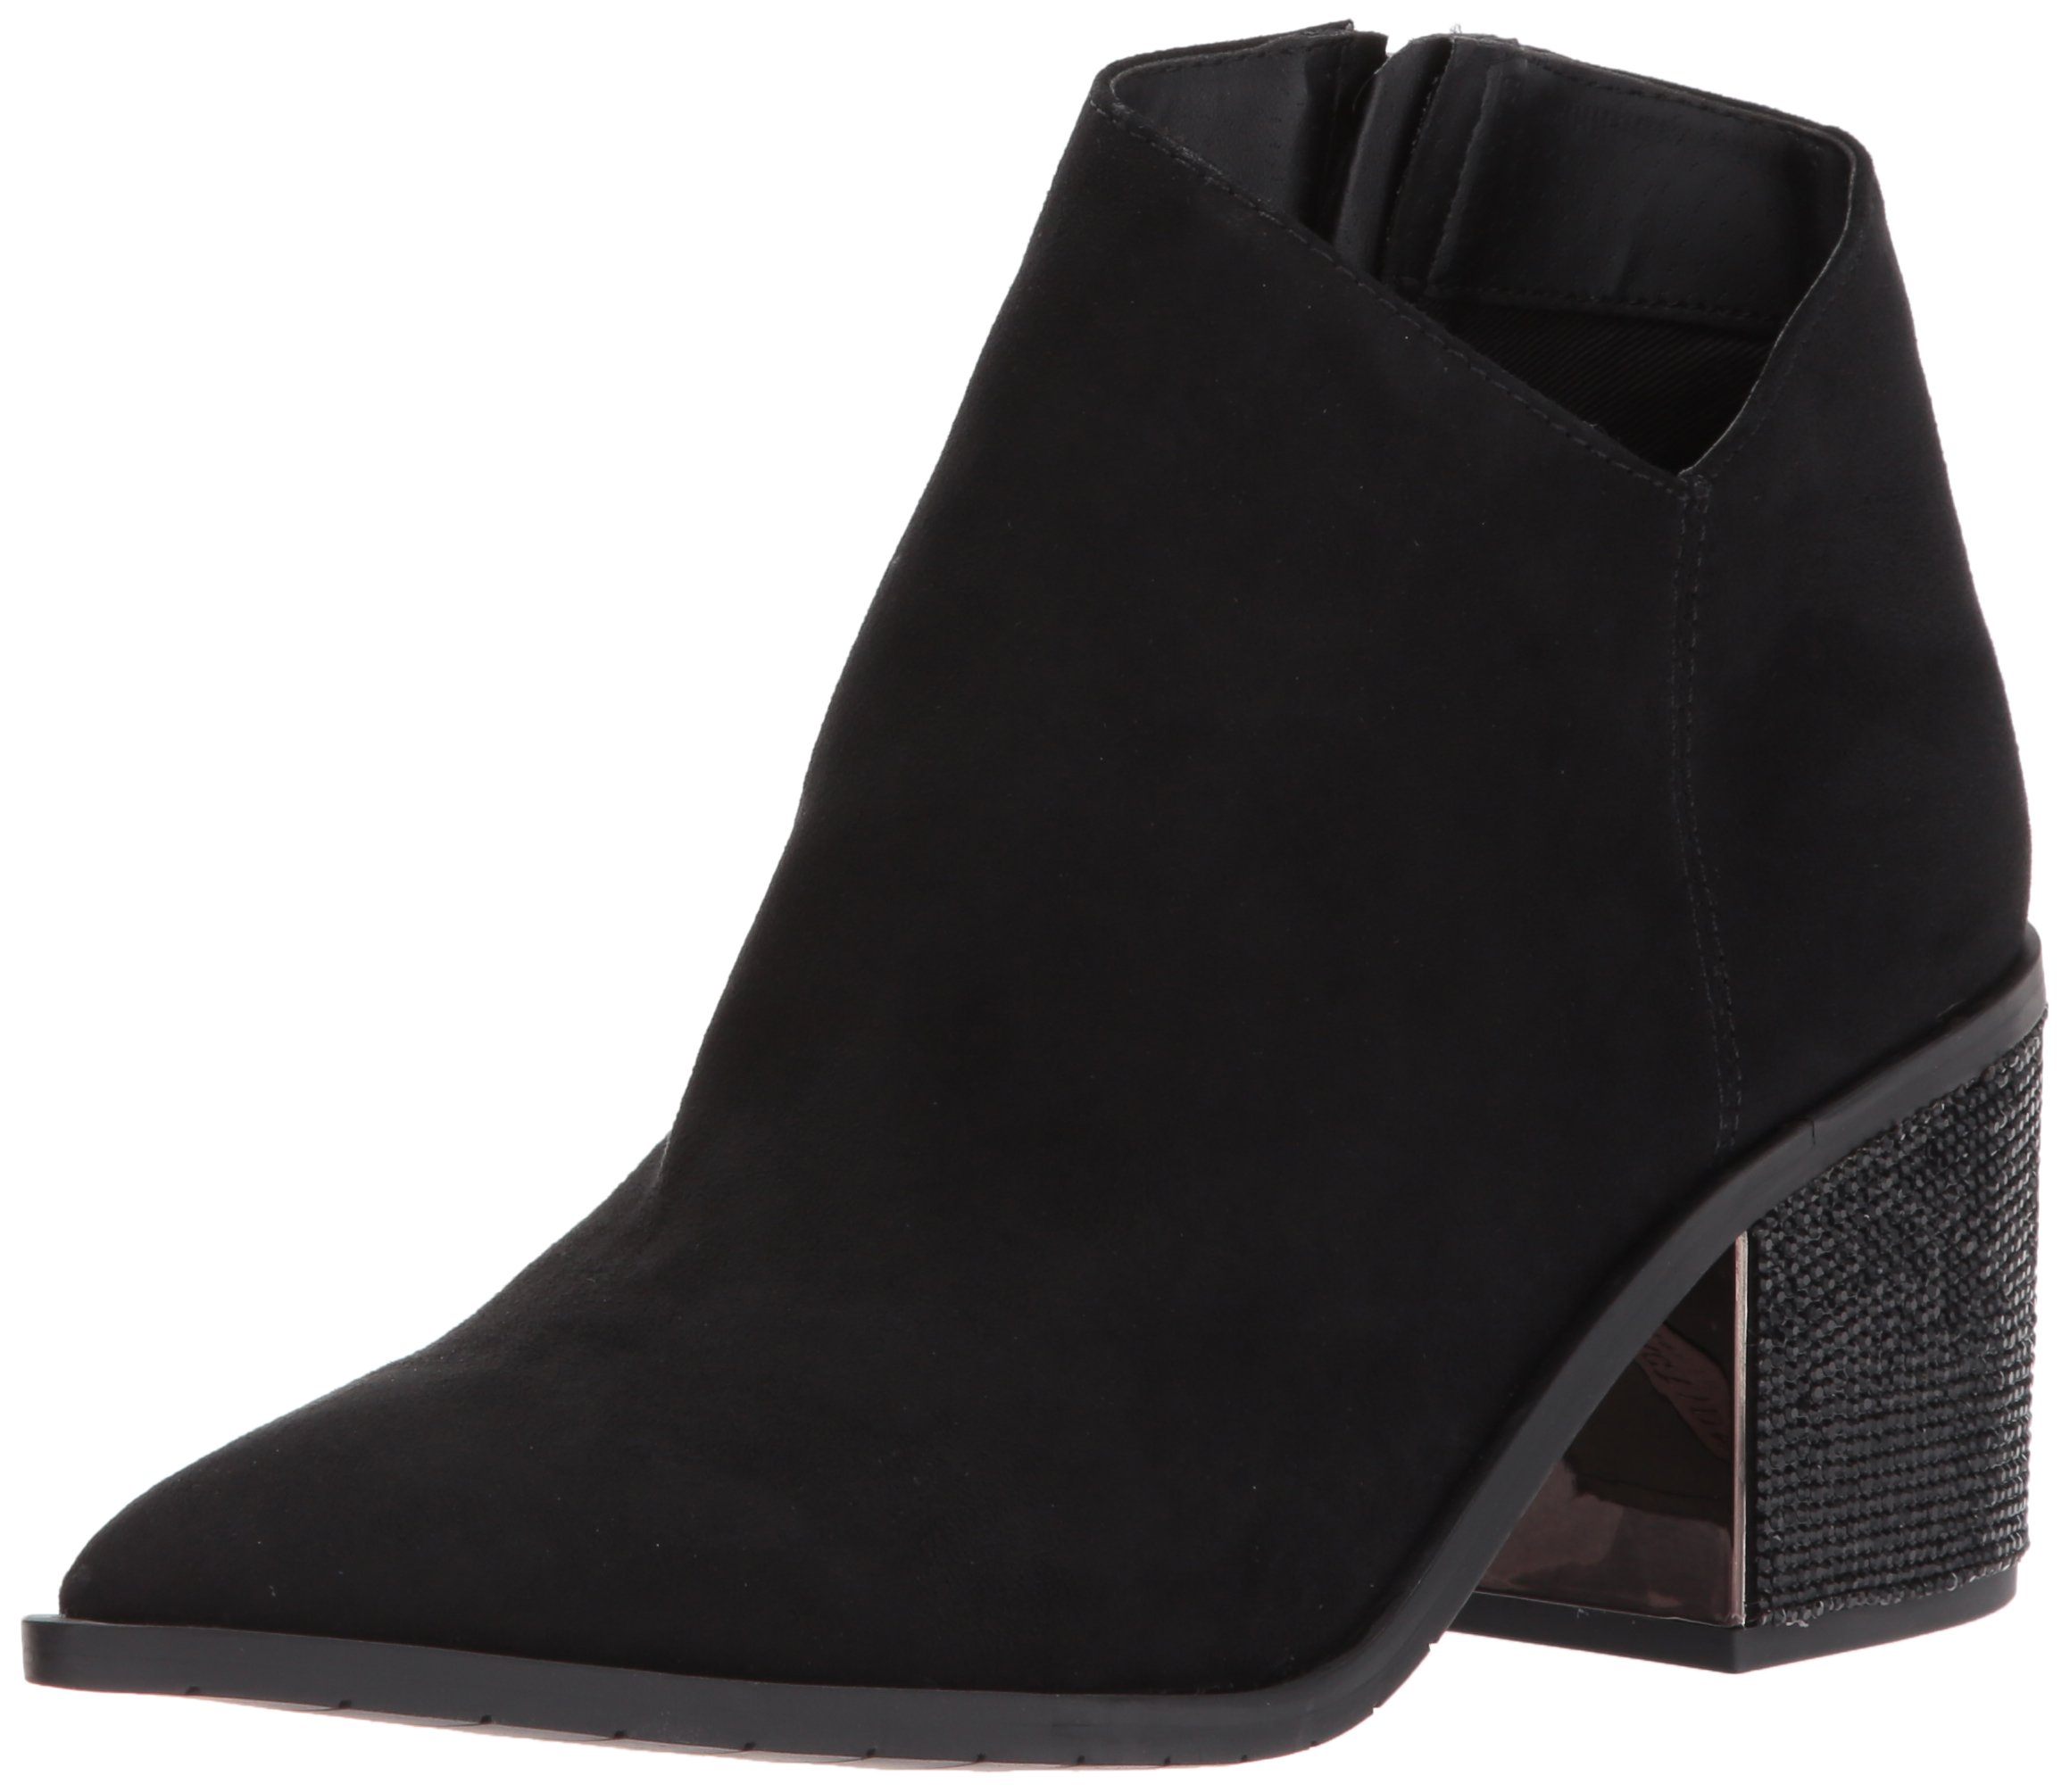 Kenneth Cole REACTION Women's Cue The Music Notch Western Style Micro Ankle Bootie, Black, 6 M US